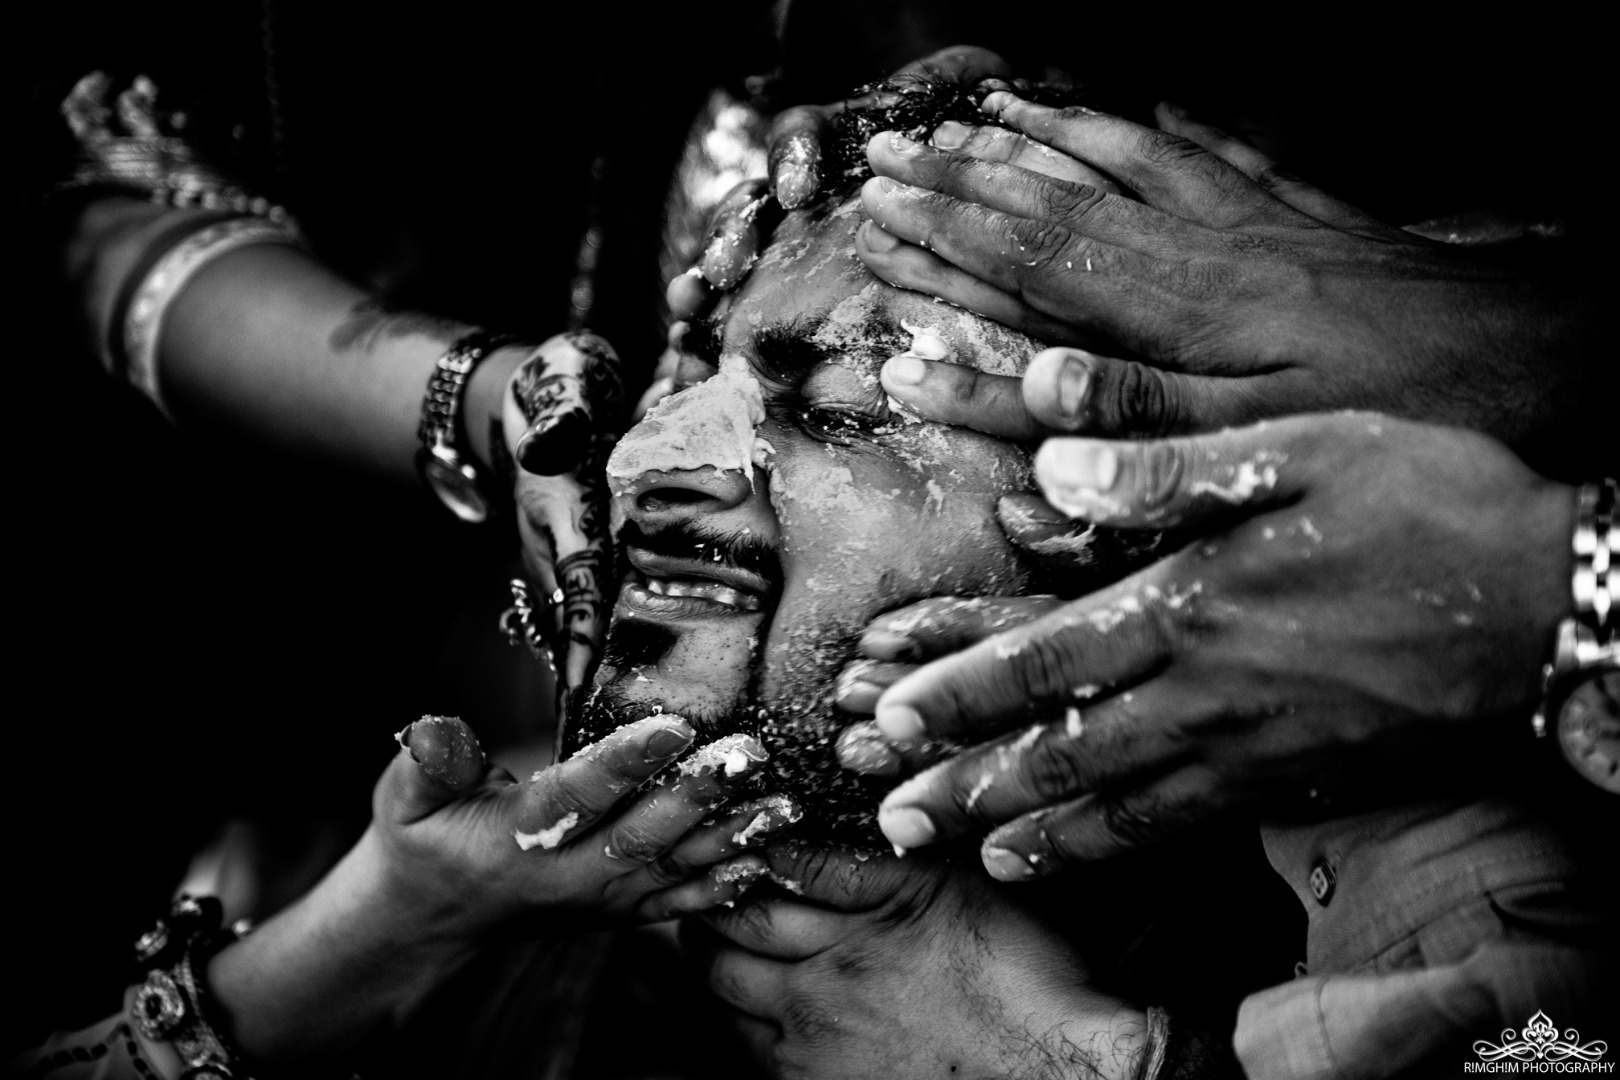 Black and White Aesthetic Haldi Images